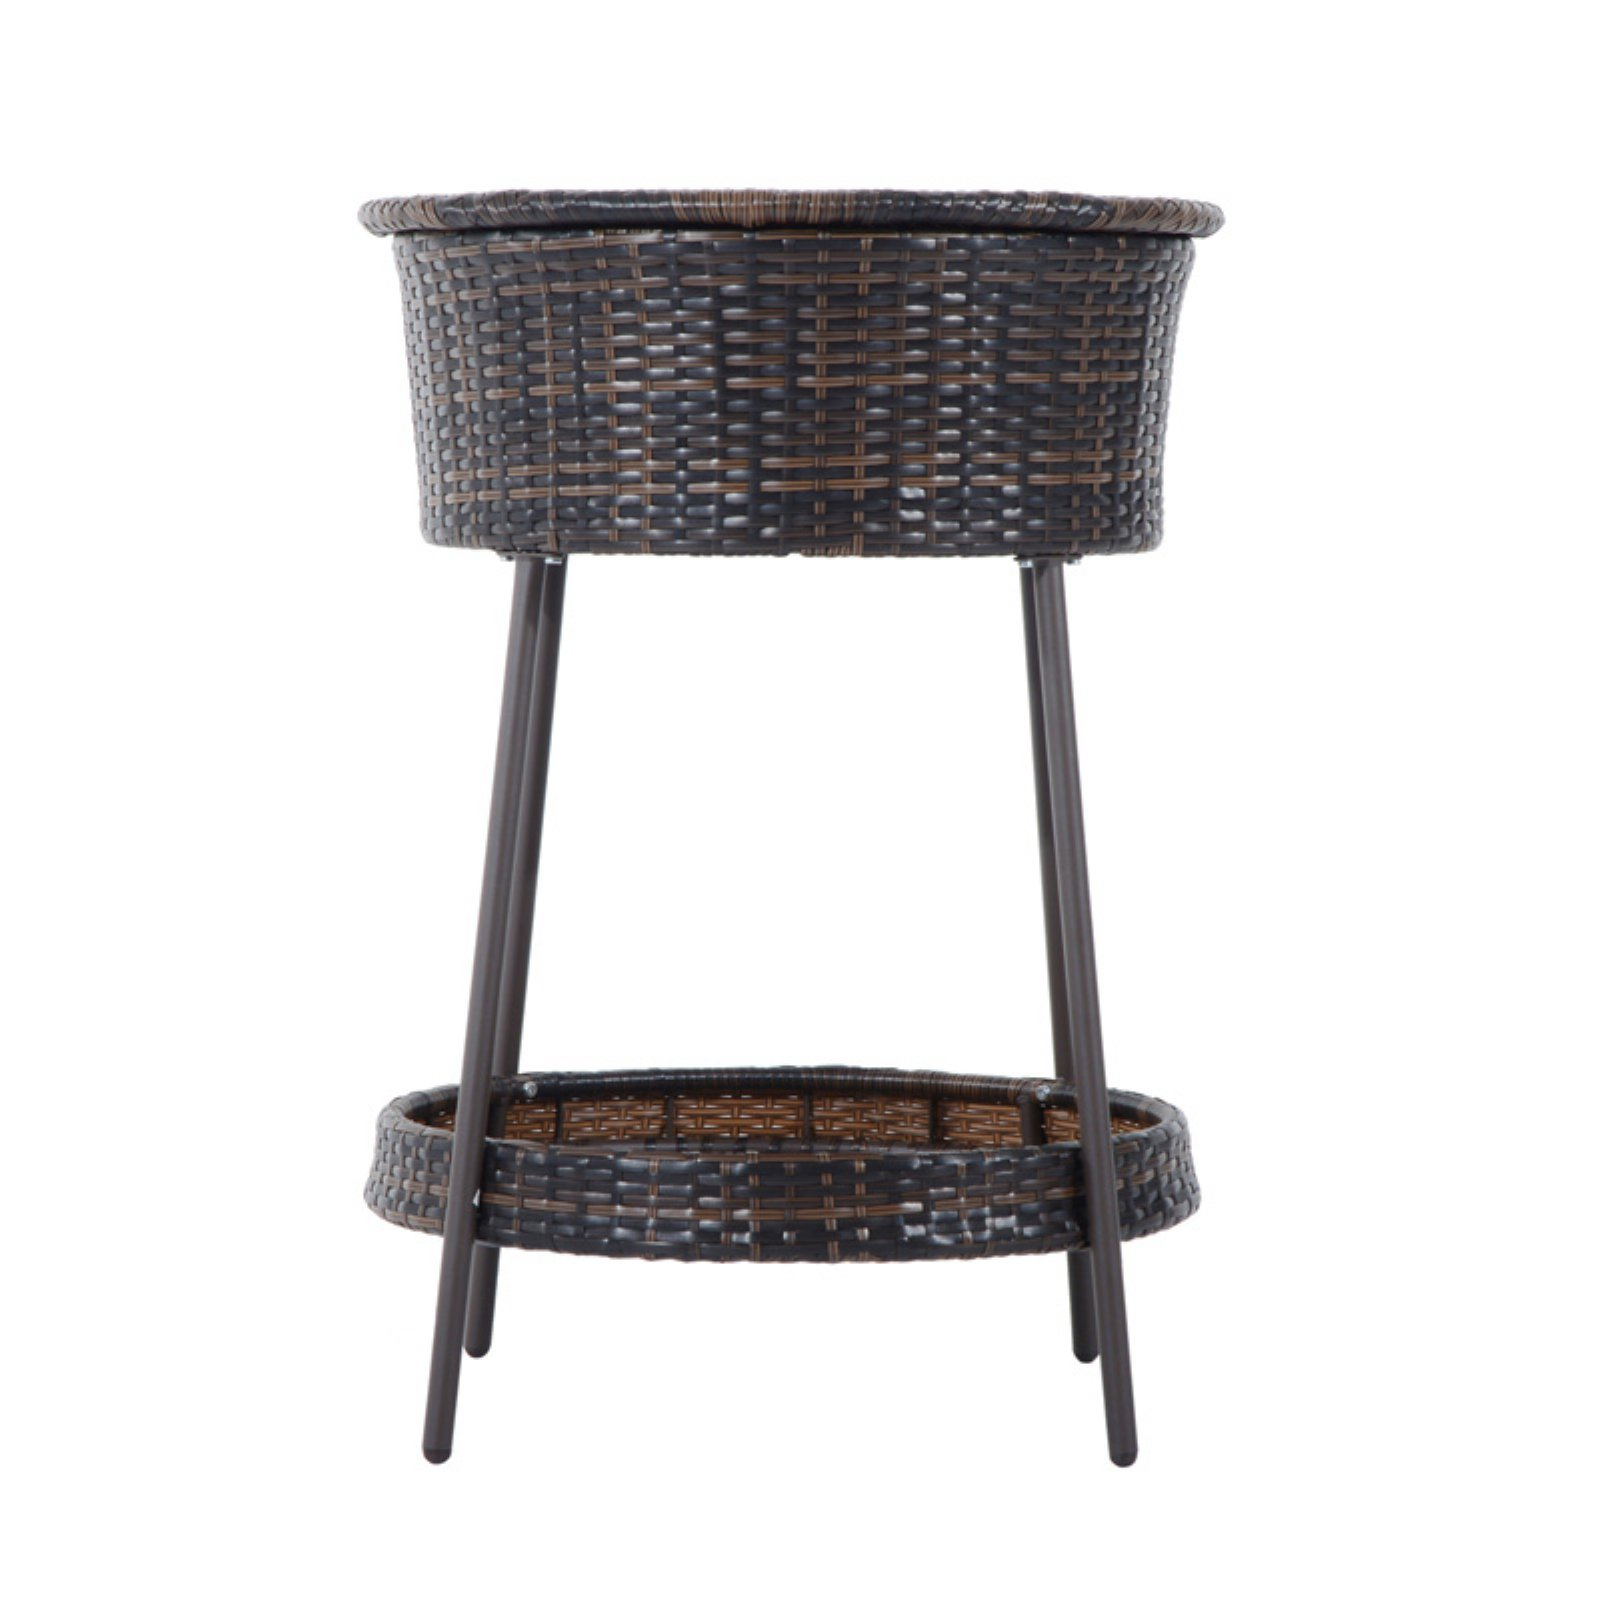 Outsunny Rattan Wicker Outdoor Ice Bucket with Lid and Tray